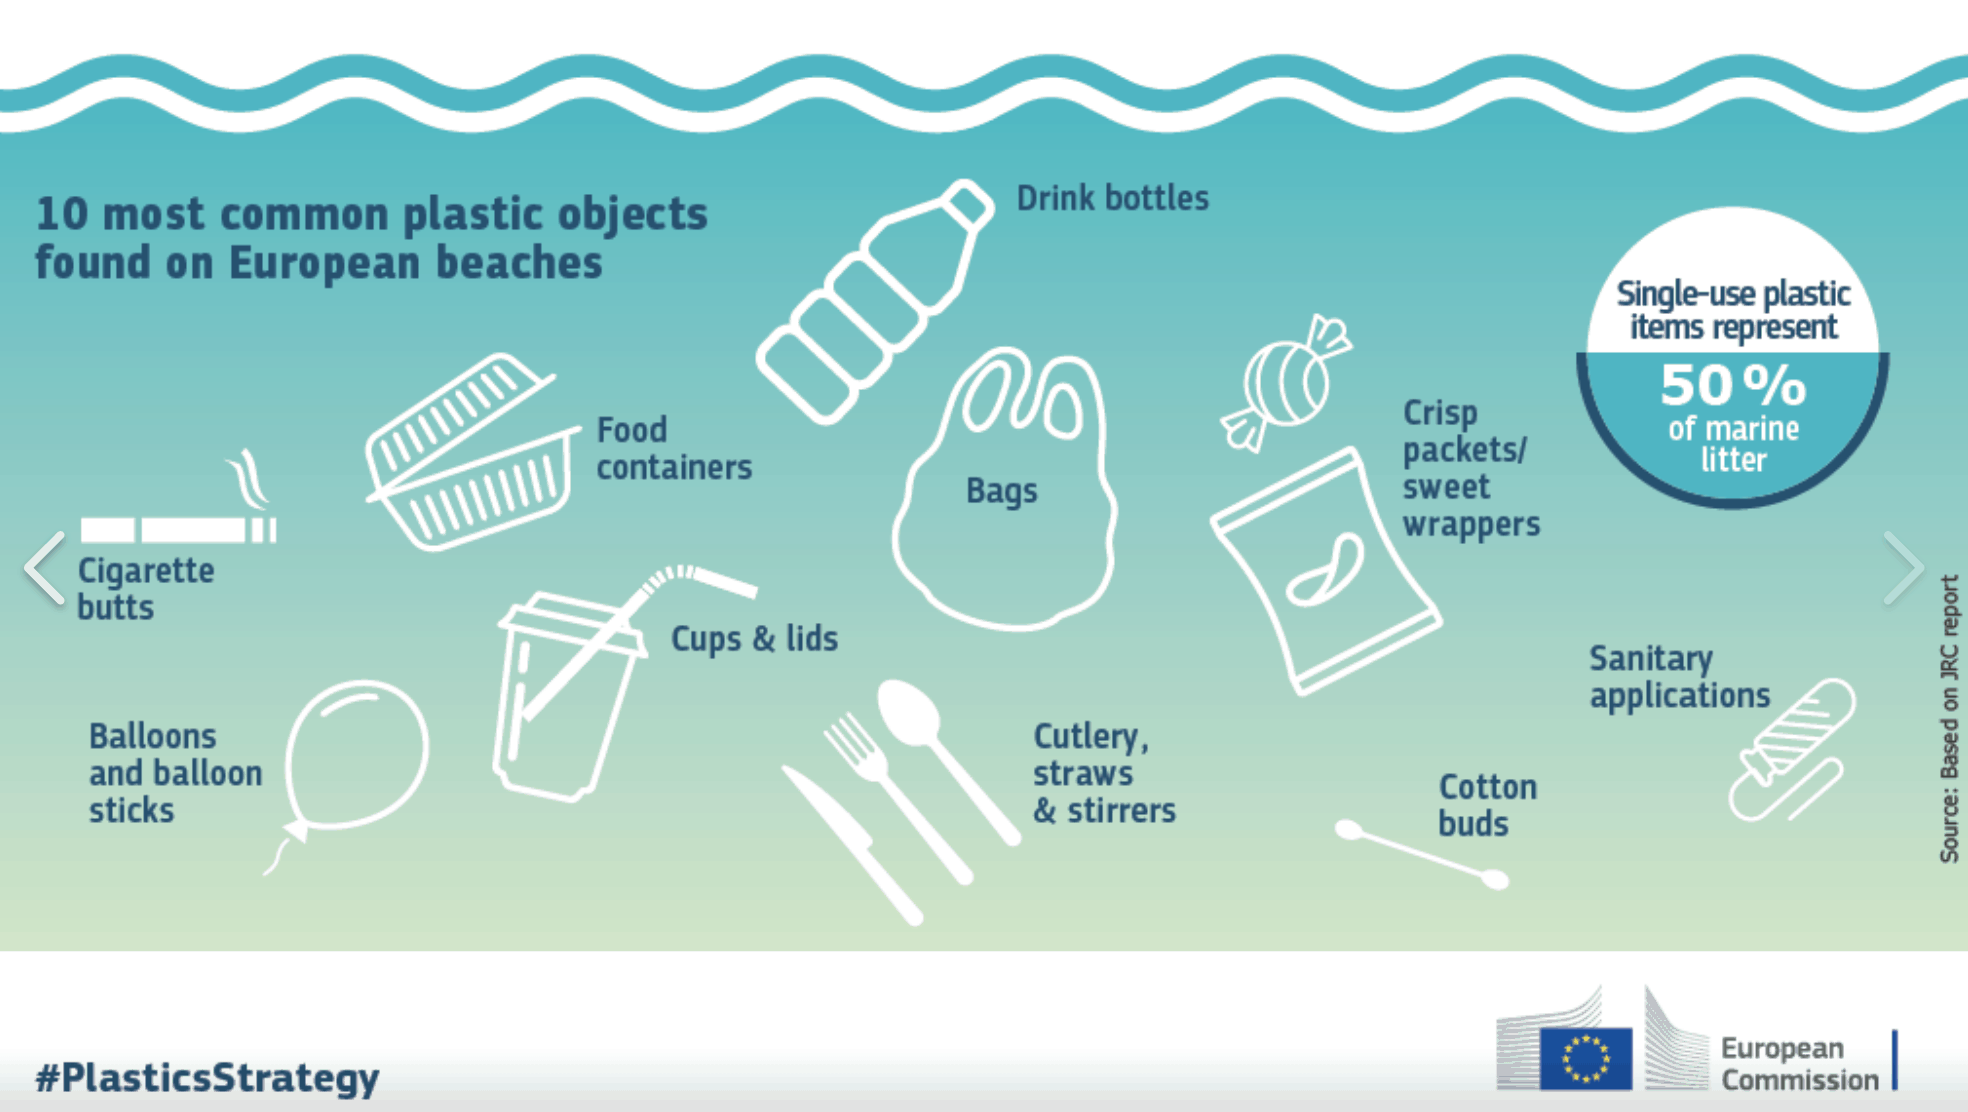 most common plastic objects found on European beaches